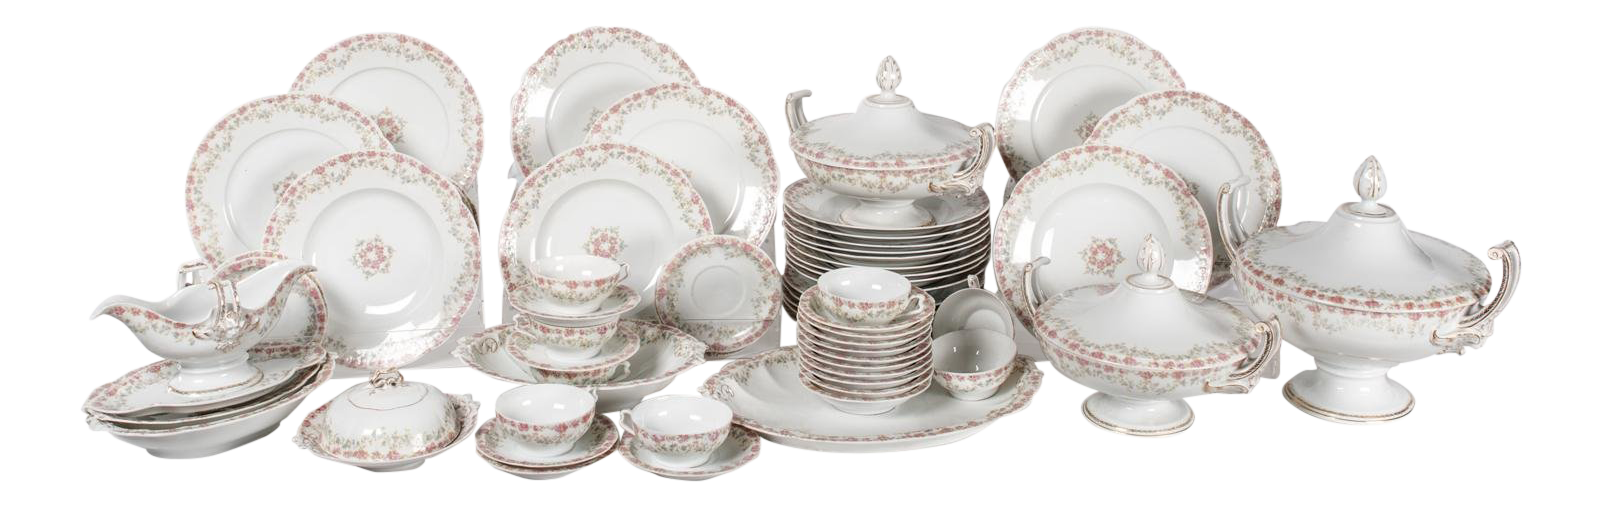 Exceptional Antique European Dinnerware Service for 8 People With Serving Pcs. L | DECASO  sc 1 st  Decaso & Exceptional Antique European Dinnerware Service for 8 People With ...